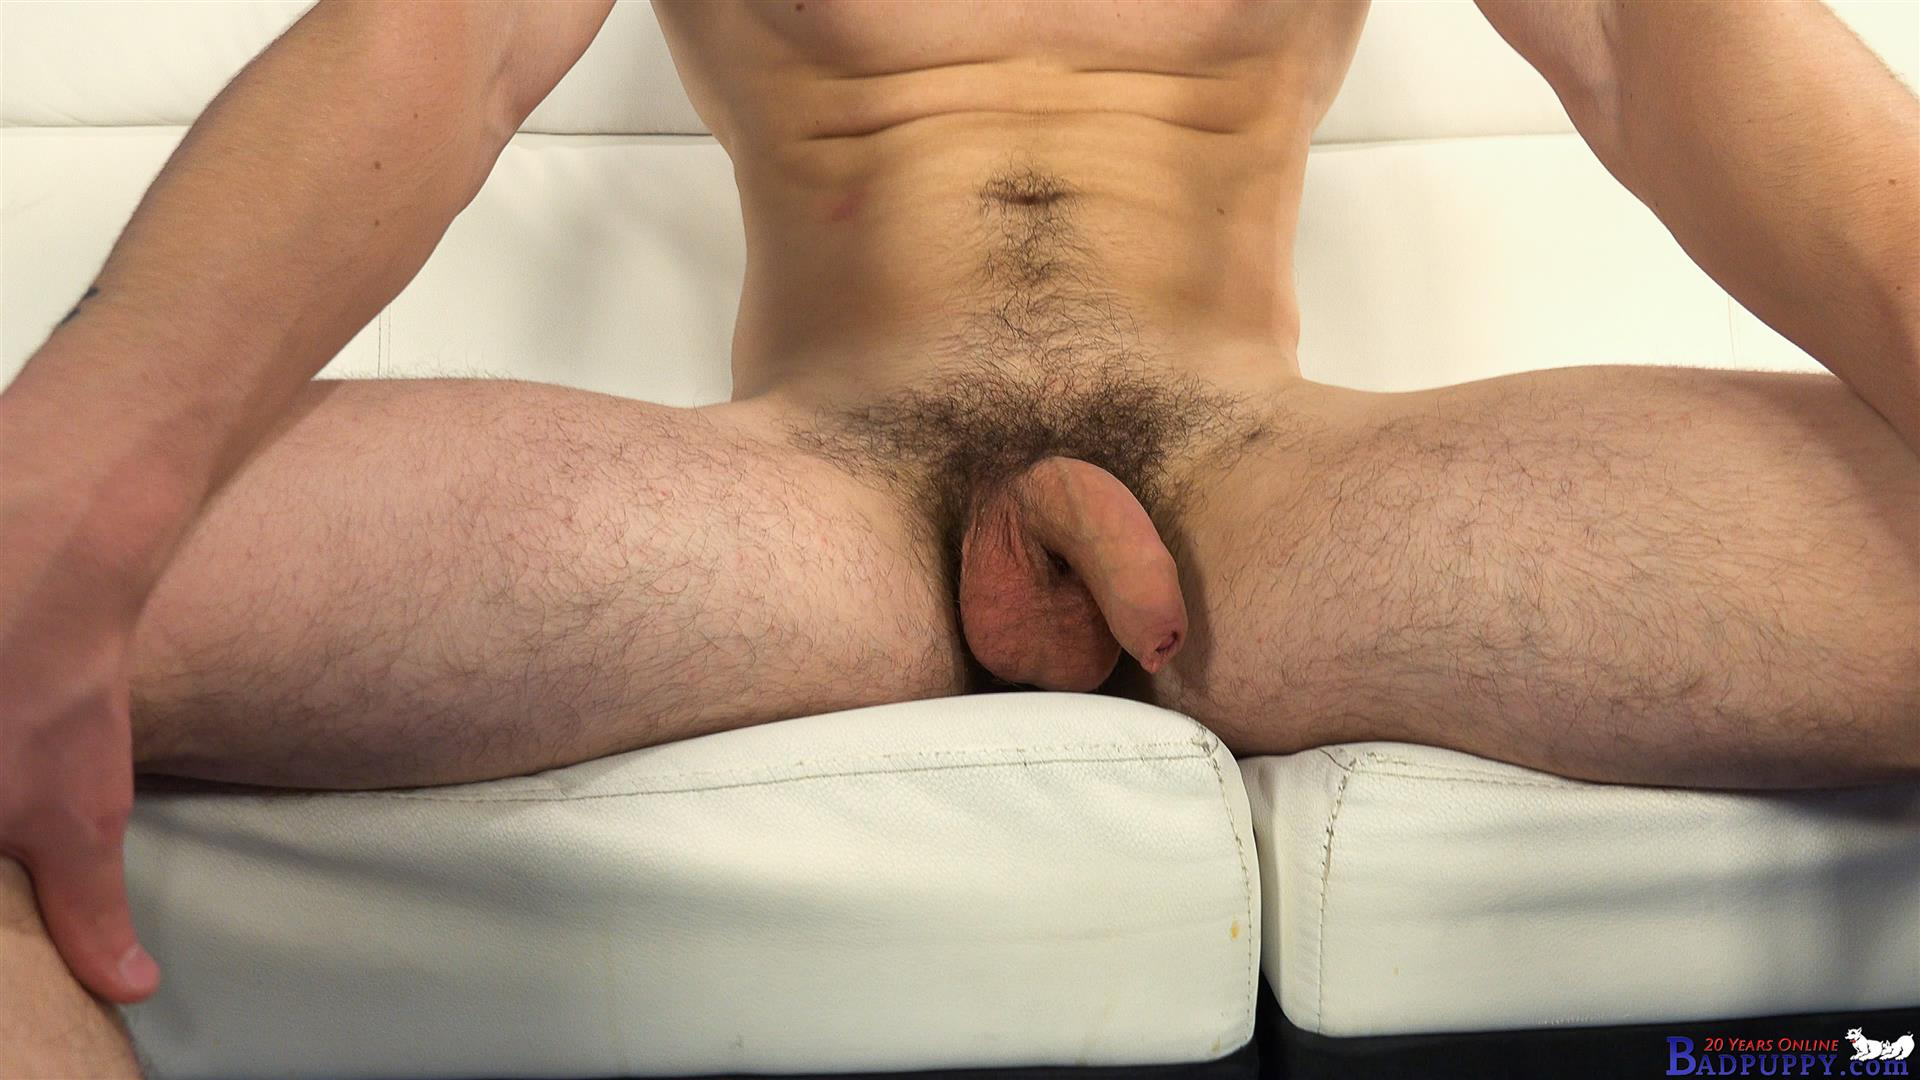 Valer Starek Badpuppy Masturbation Big Uncut Cock Hairy Ass Amateur Gay Porn 04 Young Czech Guy Auditions For Gay Porn With His Big Uncut Cock And Hairy Ass